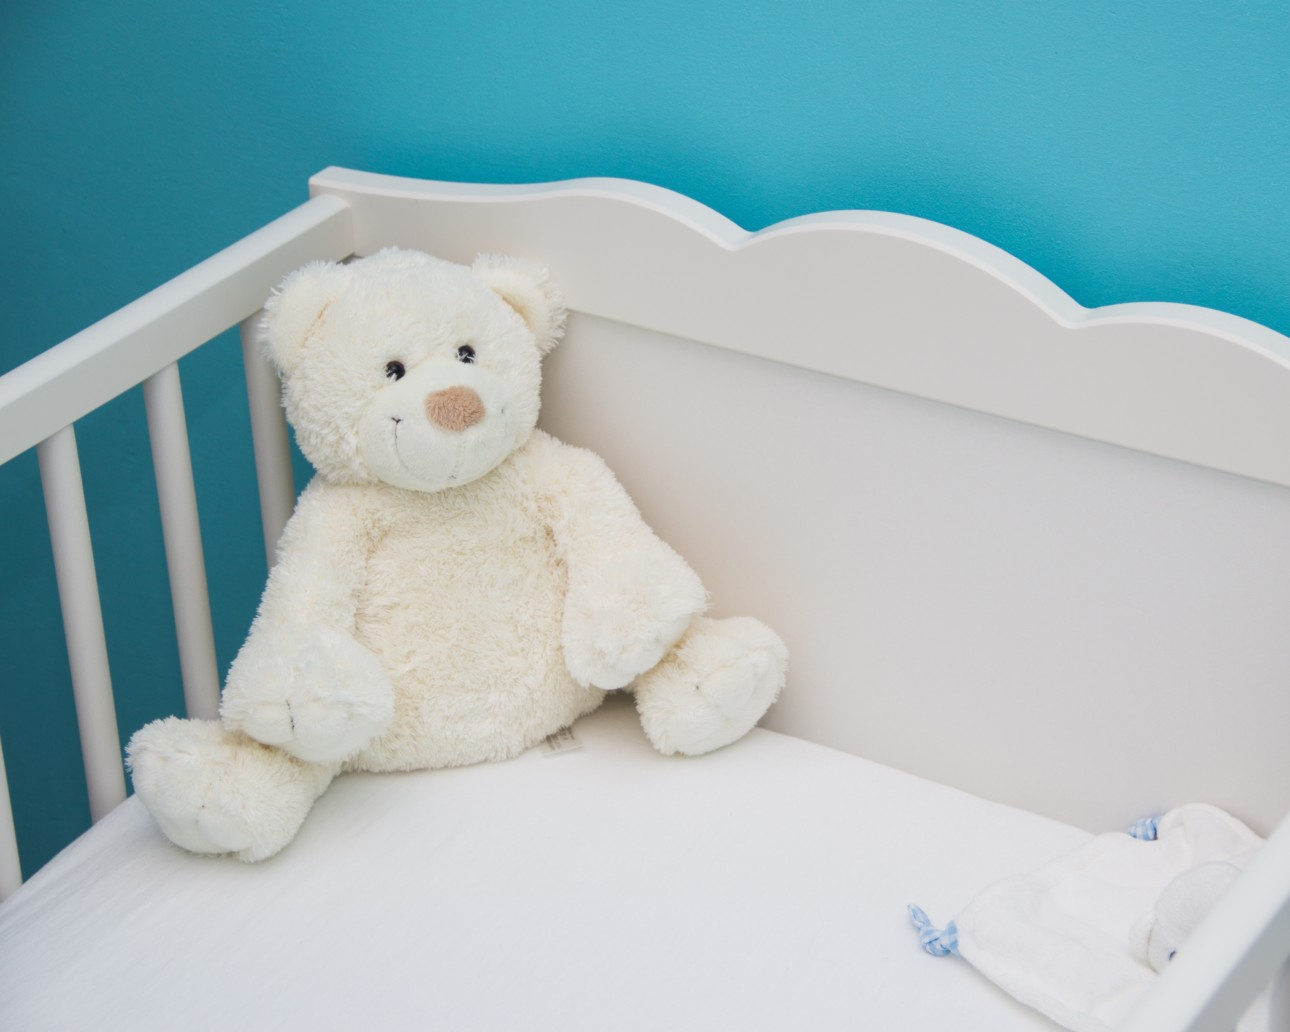 Baby crib - infertility awareness